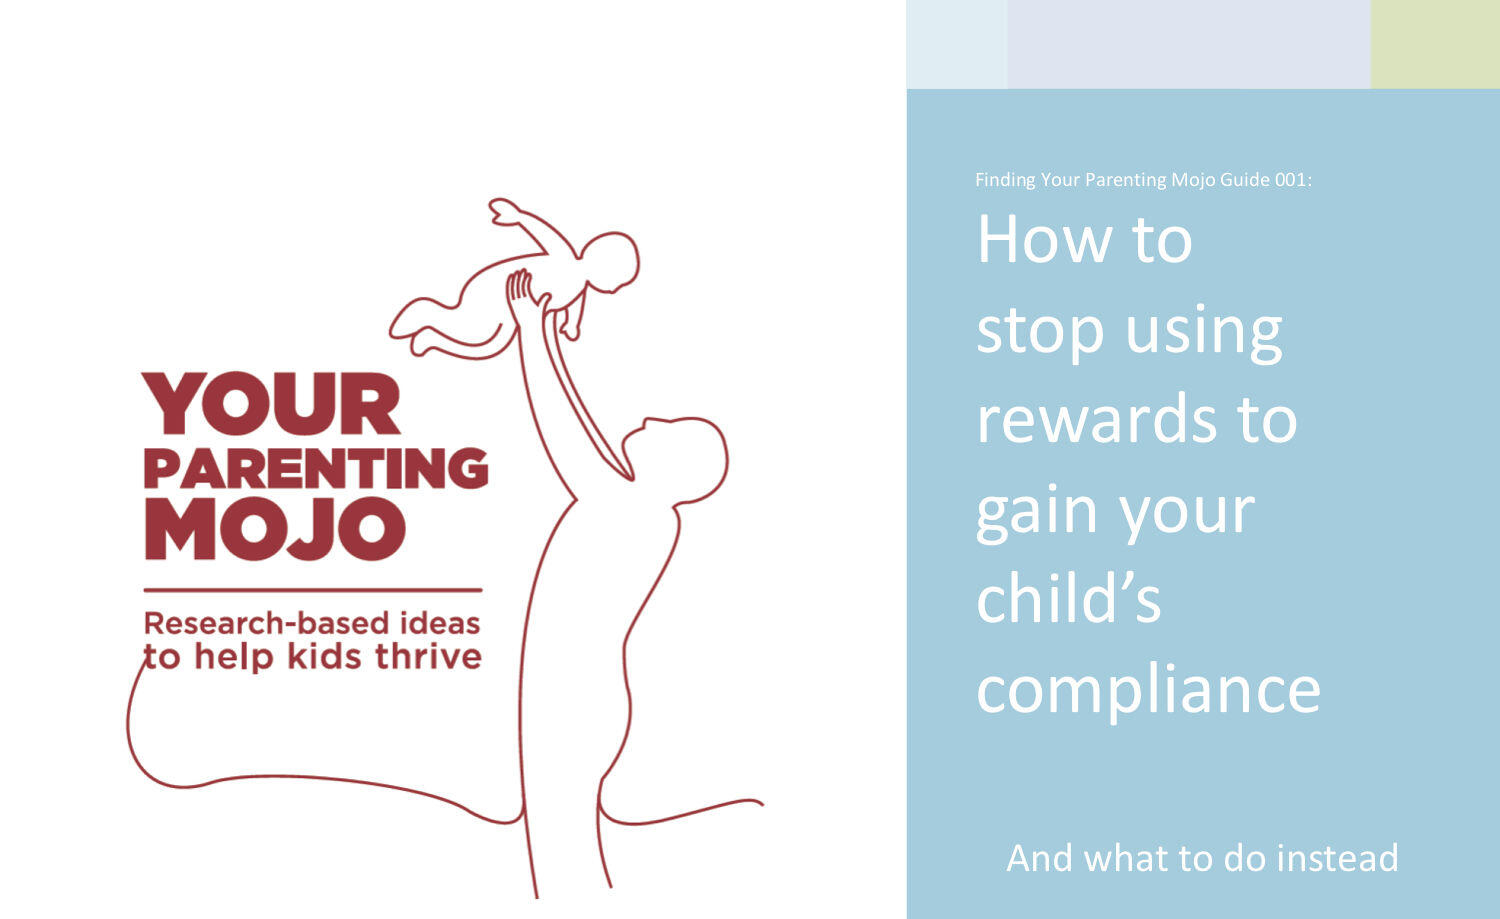 How to move beyond using rewards to control your childs behavior